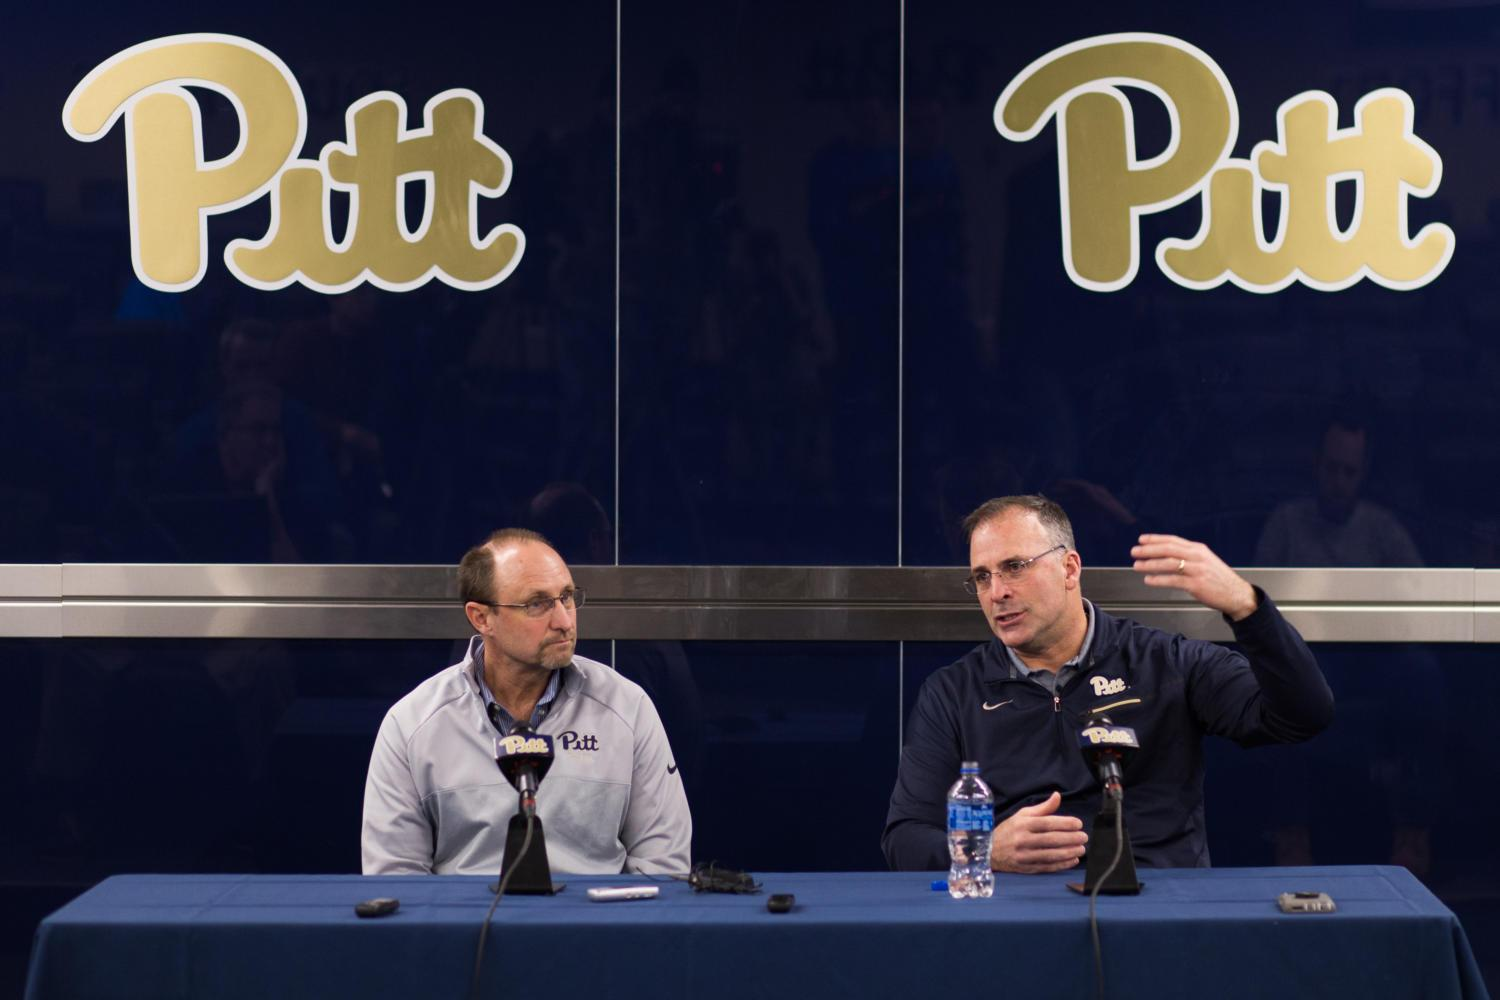 Head coach Pat Narduzzi answers a question at a press conference introducing new defensive coordinator Randy Bates. (Photo by John Hamilton | Contributing Editor)